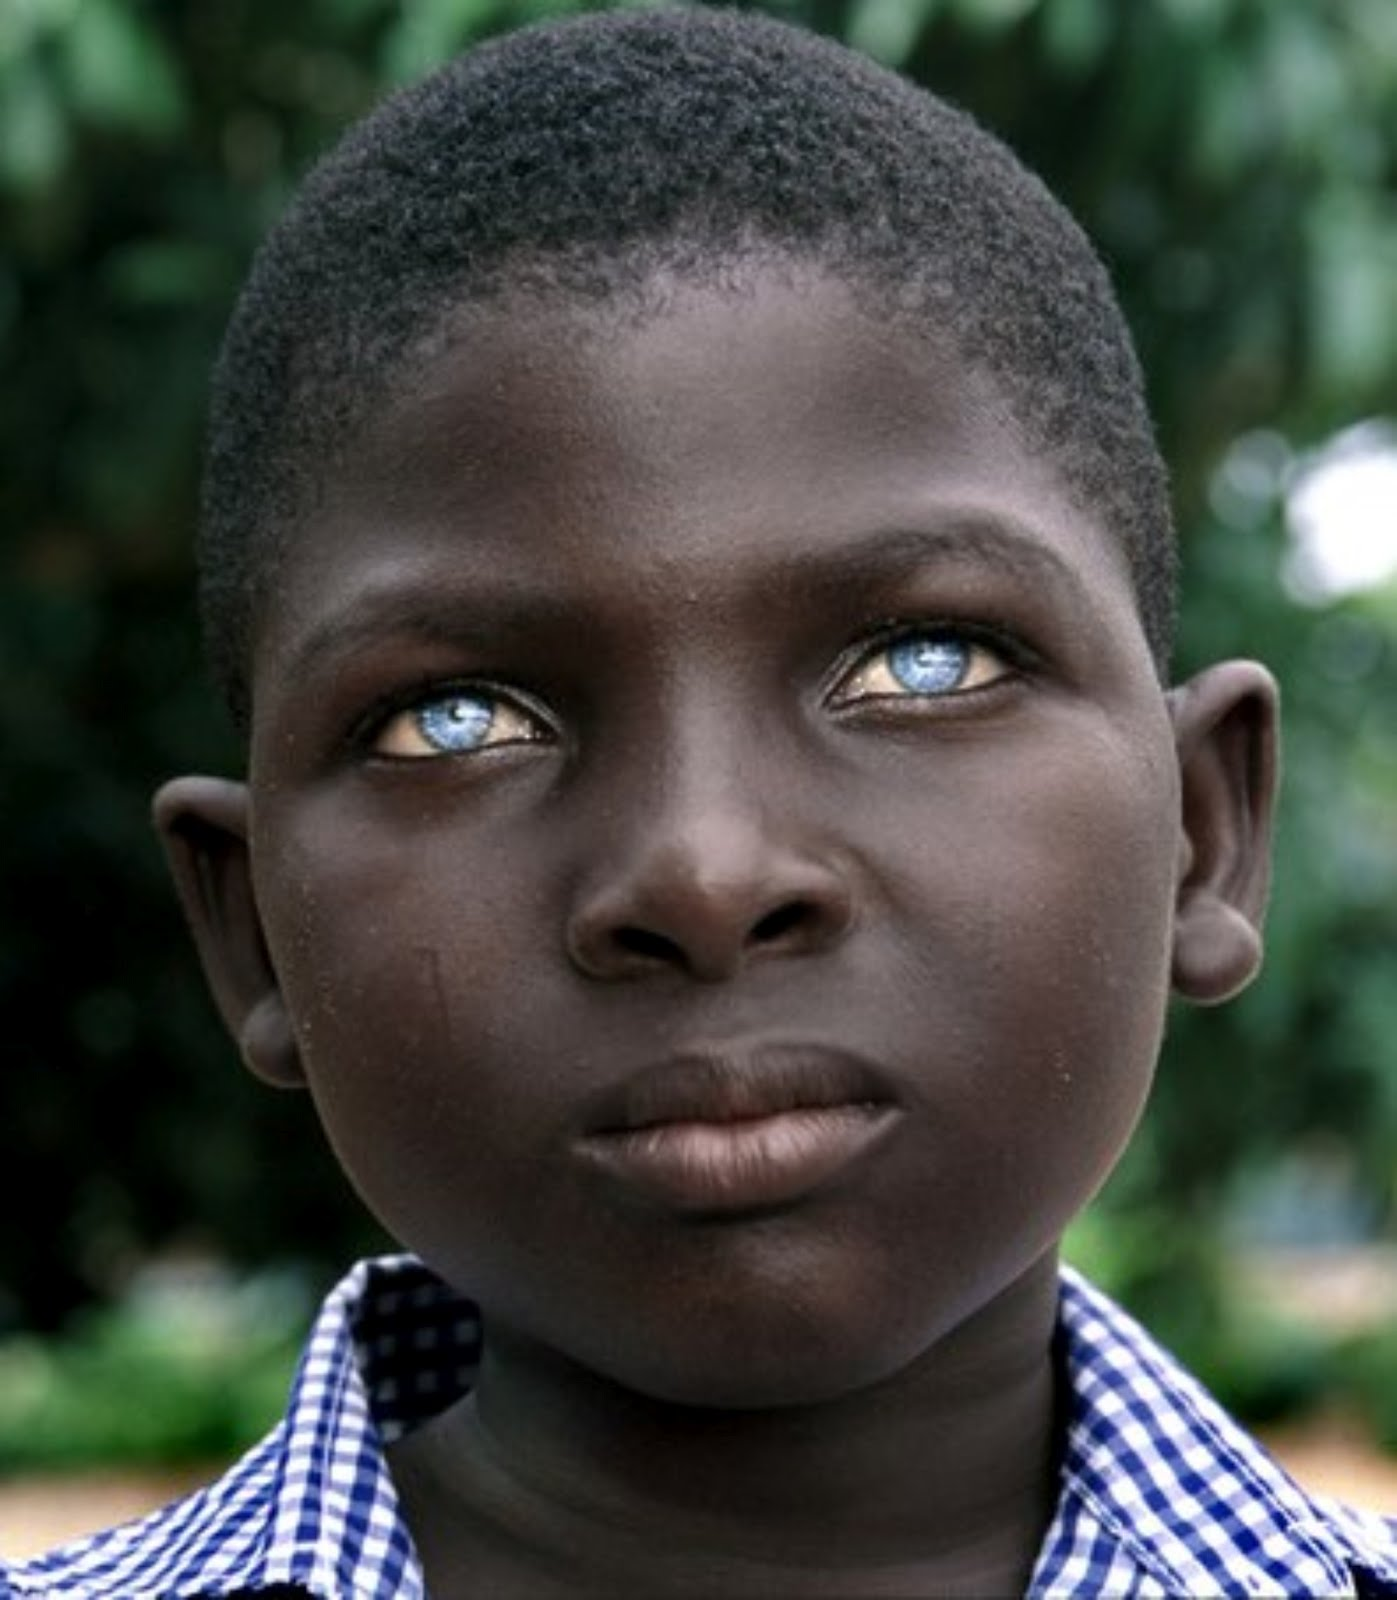 Black people with blue eyes